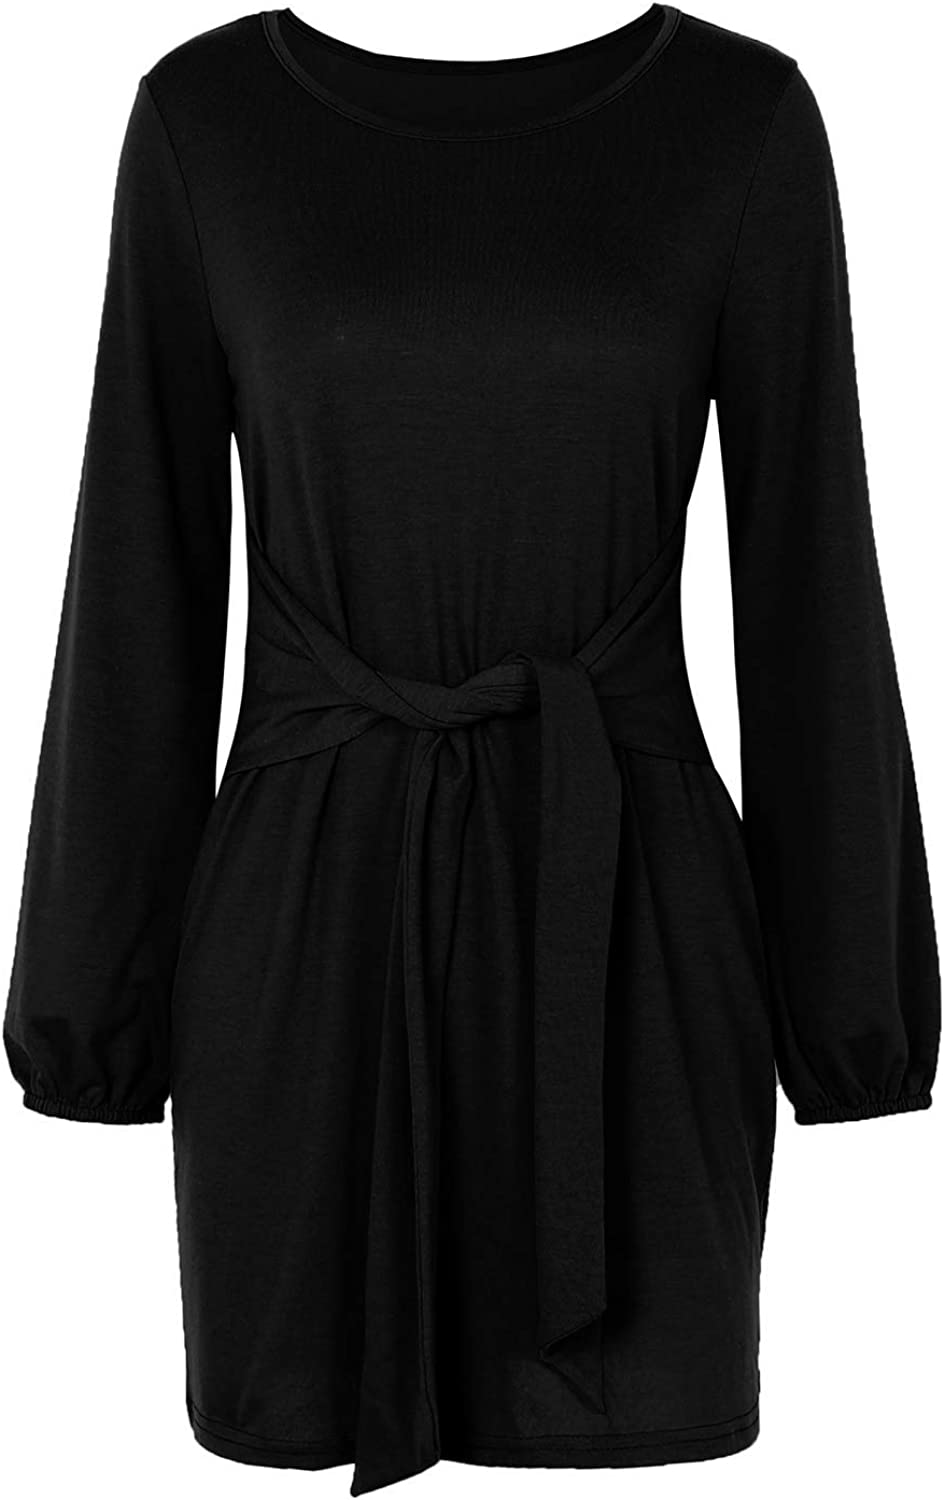 INIBUD Front Tie Long Sleeve Dresses for Women Loose Casual T Shirt Party Dress Rond Neck